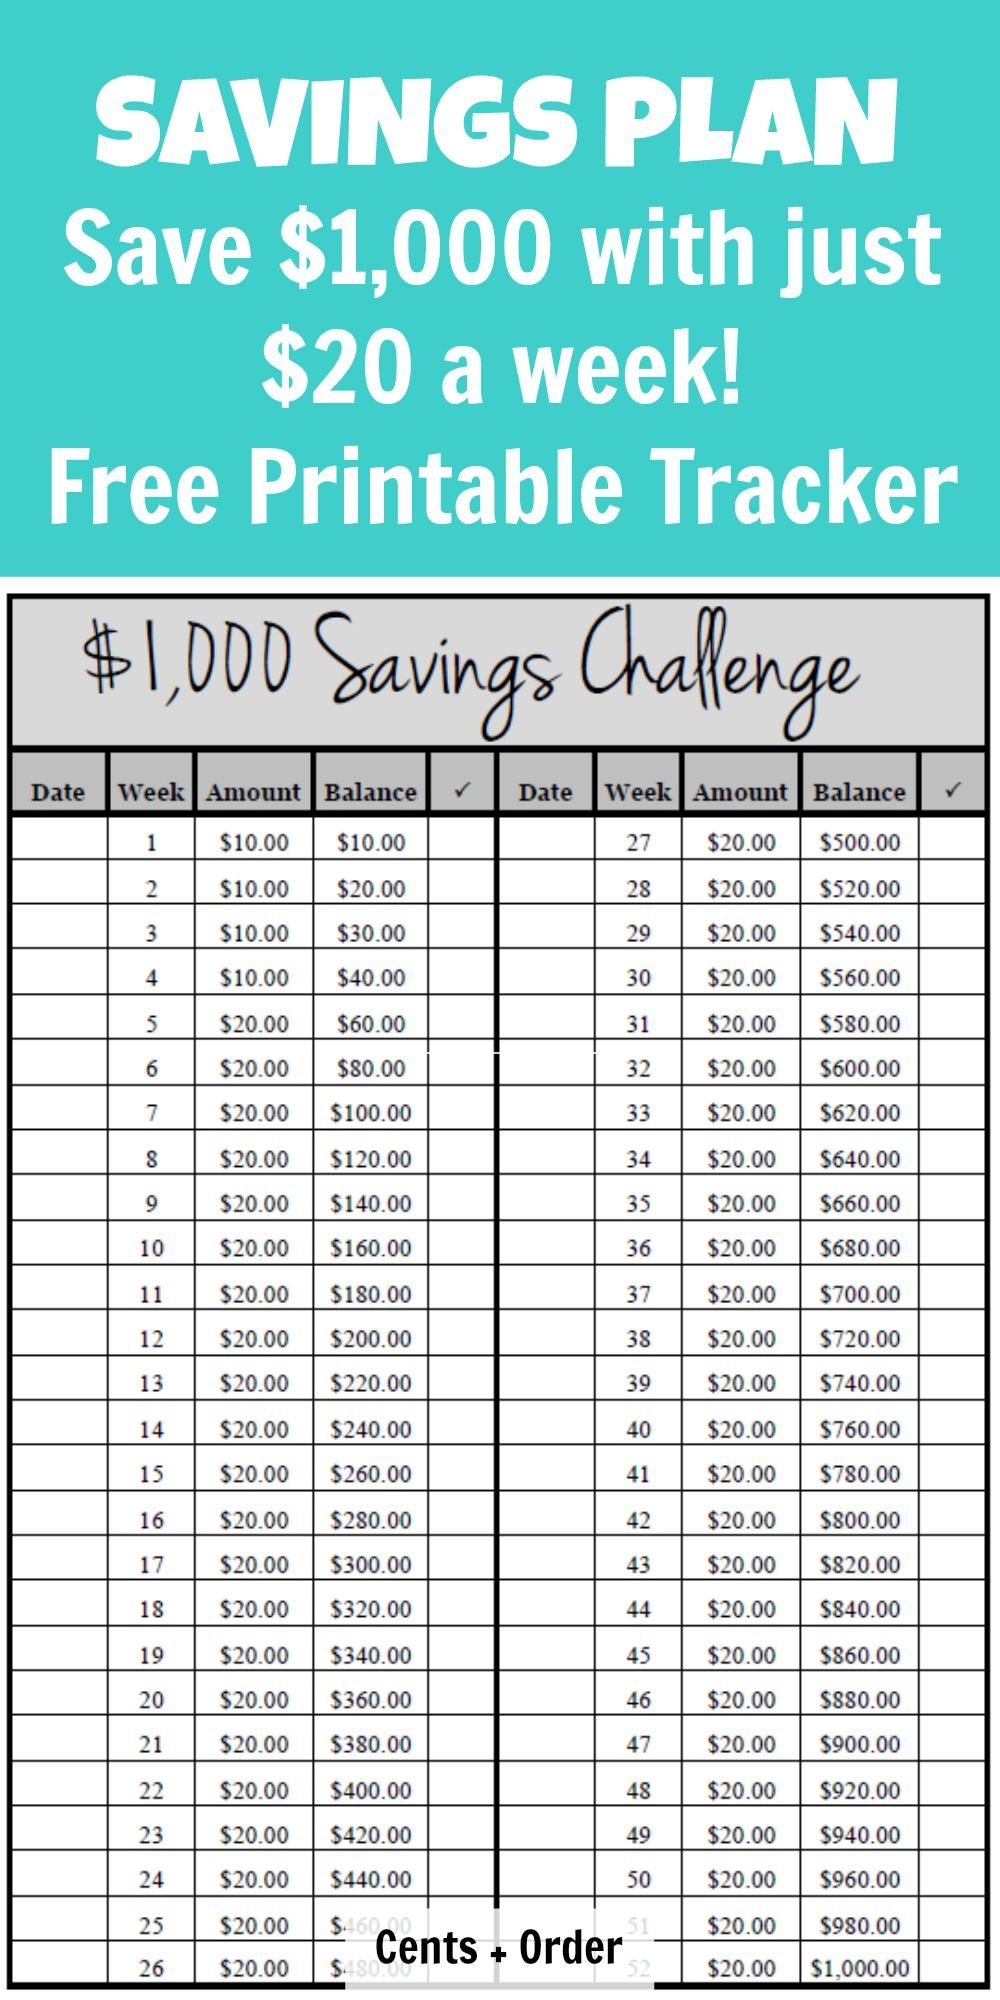 52 week 1000 savings challenge plan free printable for Save money building a house